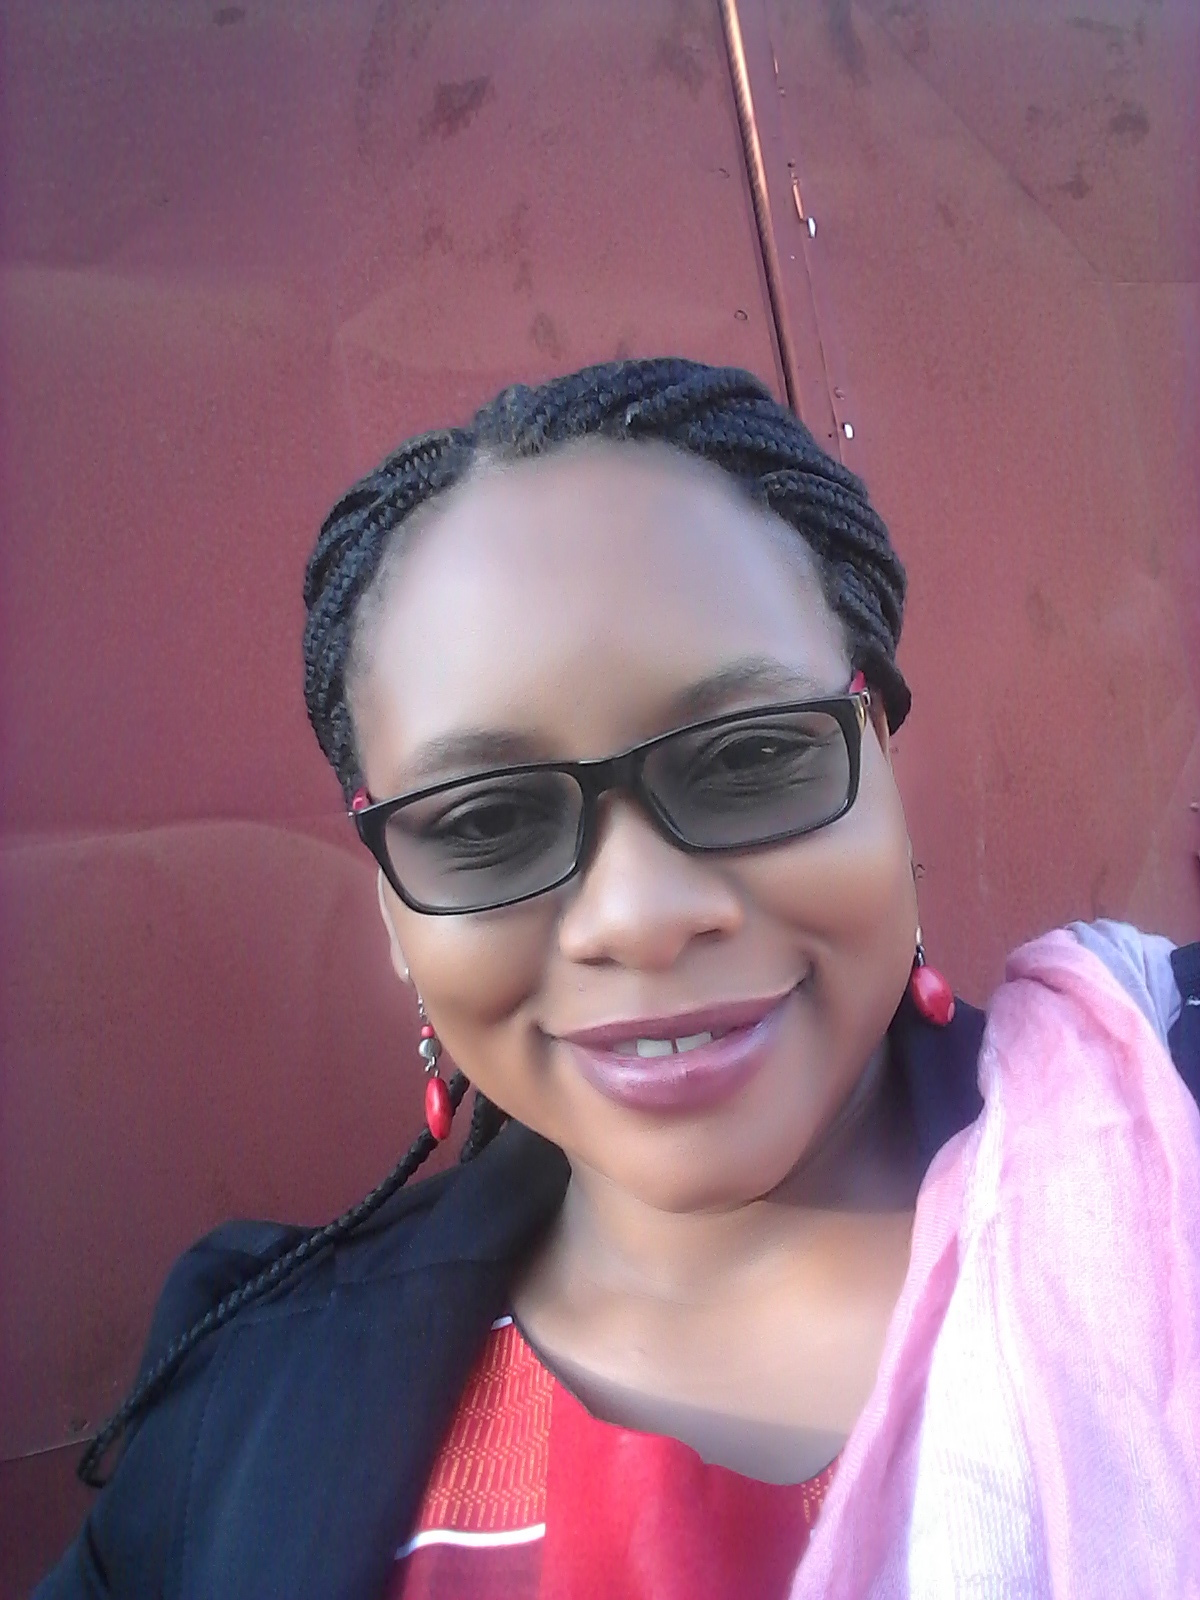 BARBARA CHISANGANO - is committed to working with marginalized populations with particular focus on women, children in advancing their aspirations and wellbeing using community centered approaches.